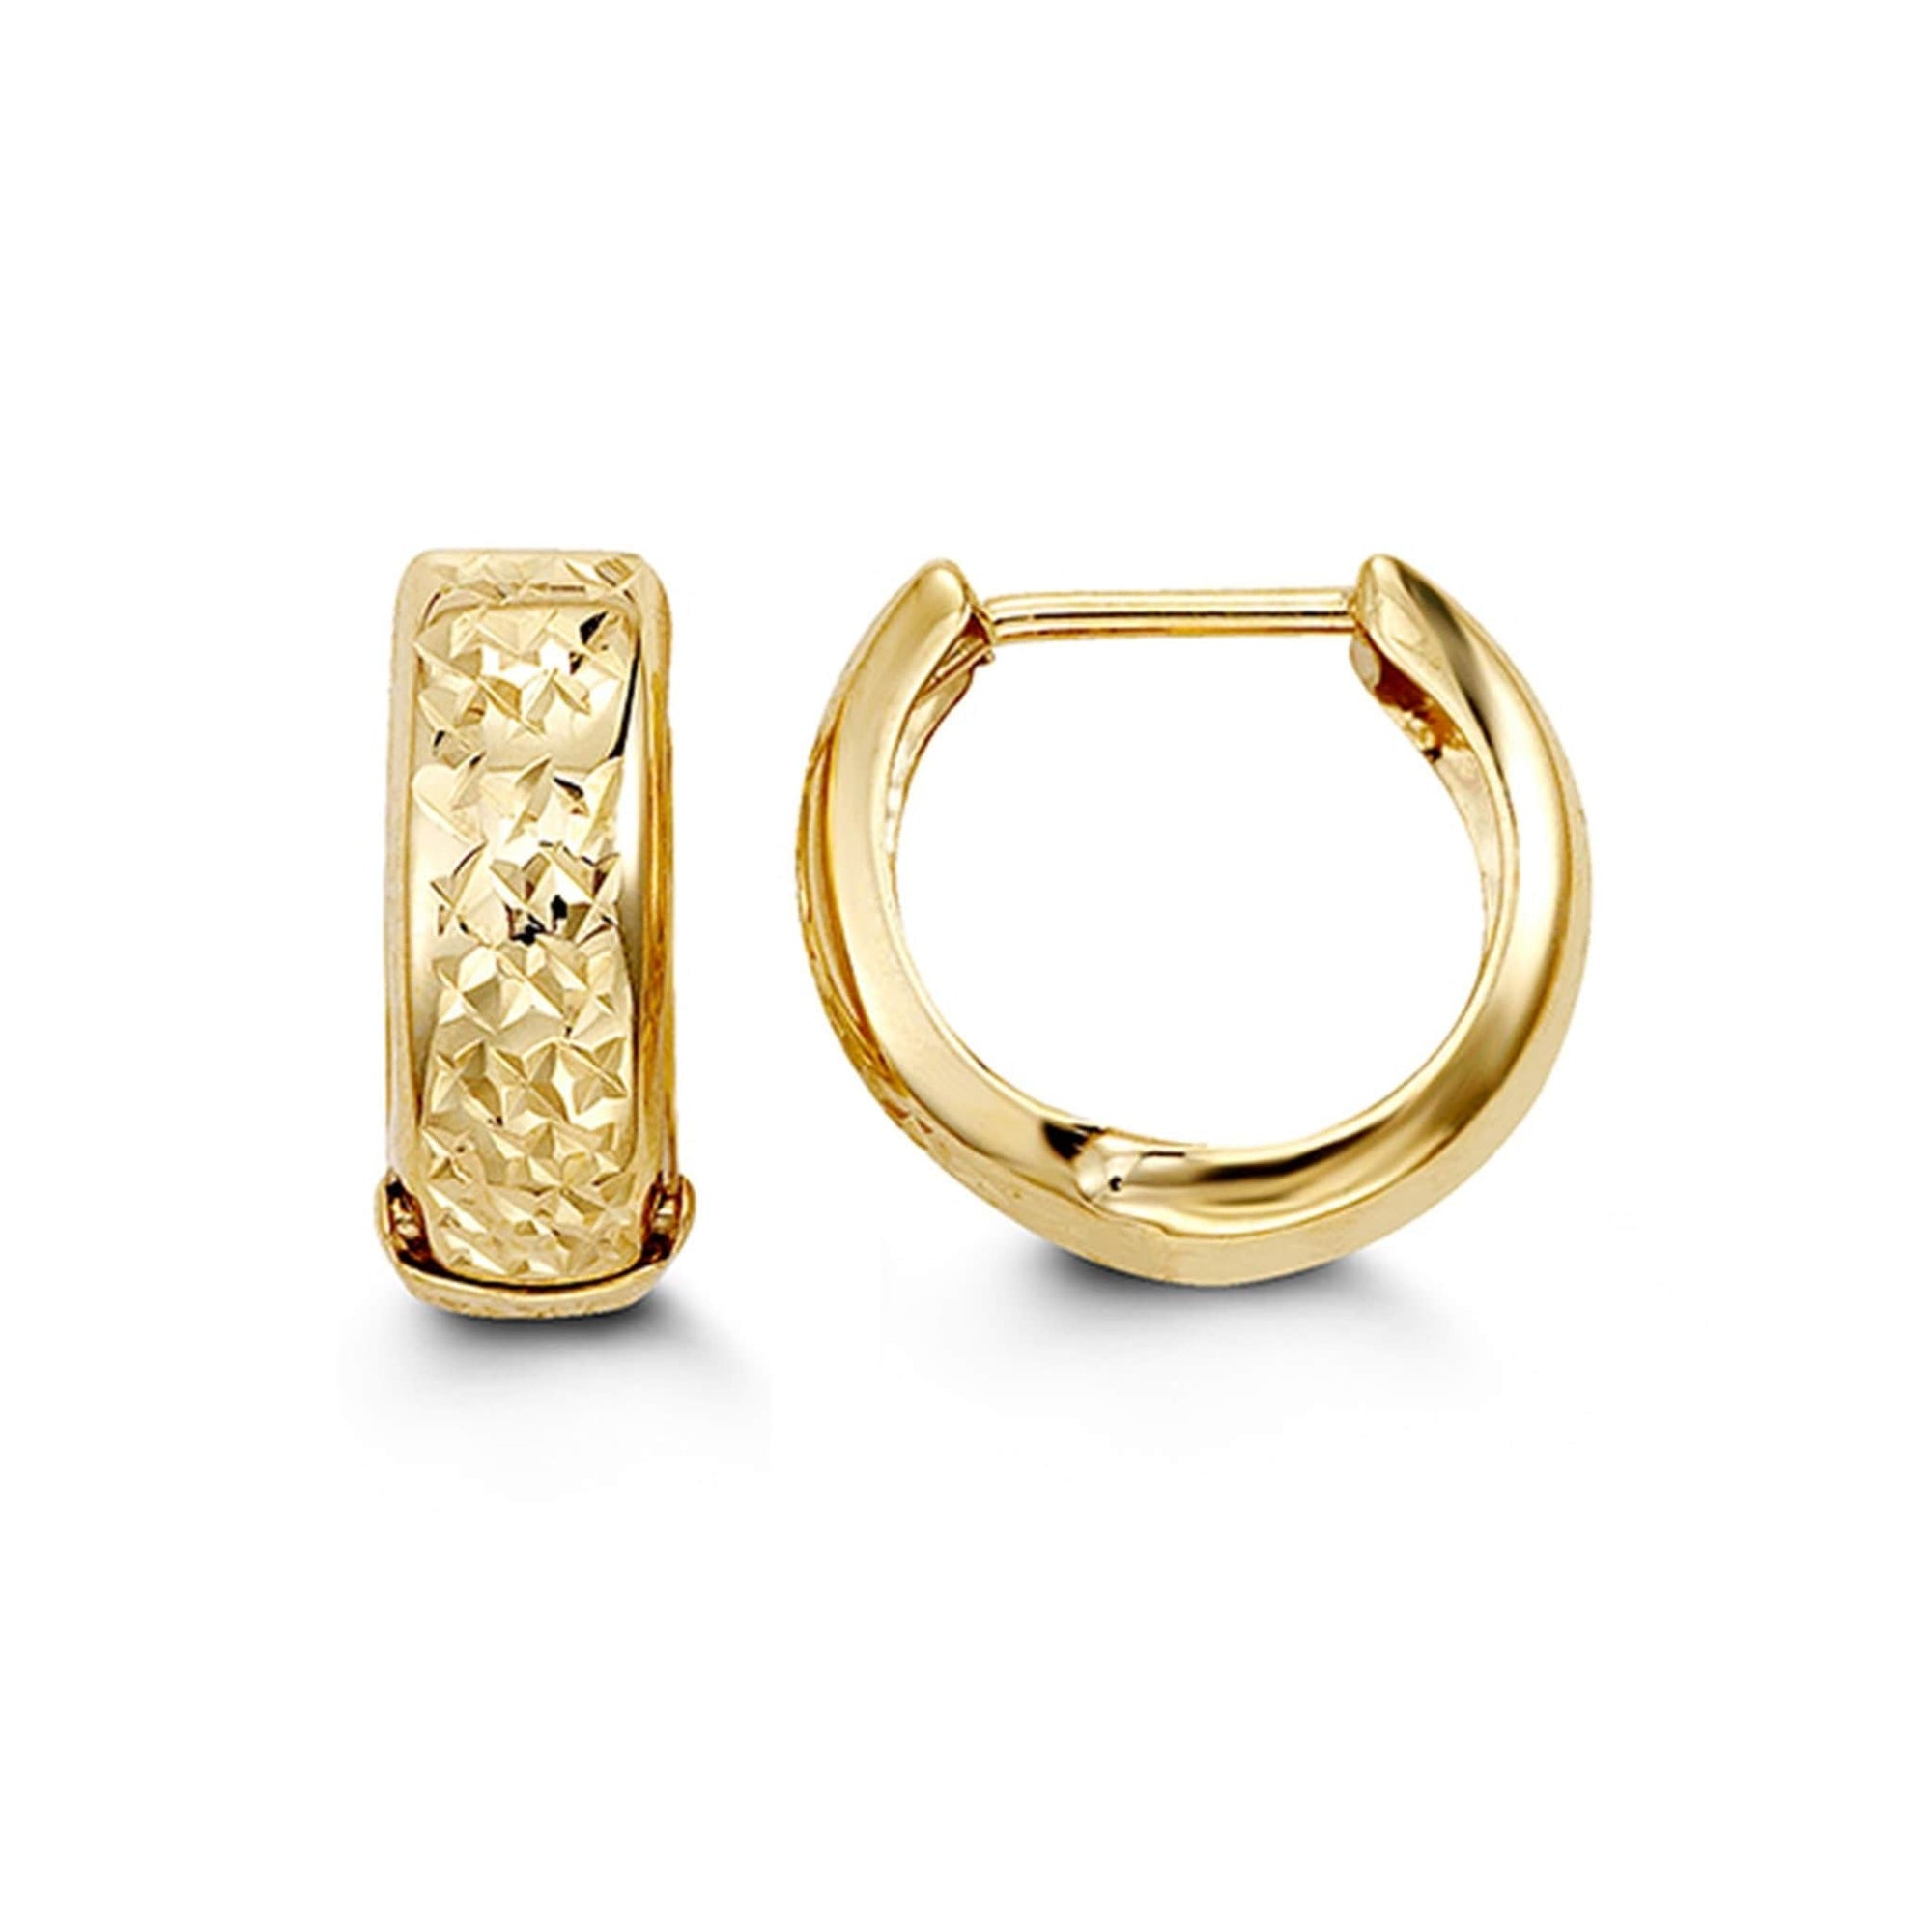 10K Yellow Gold Diamond-Cut Huggie Hoop Earrings at Arman's Jewellers